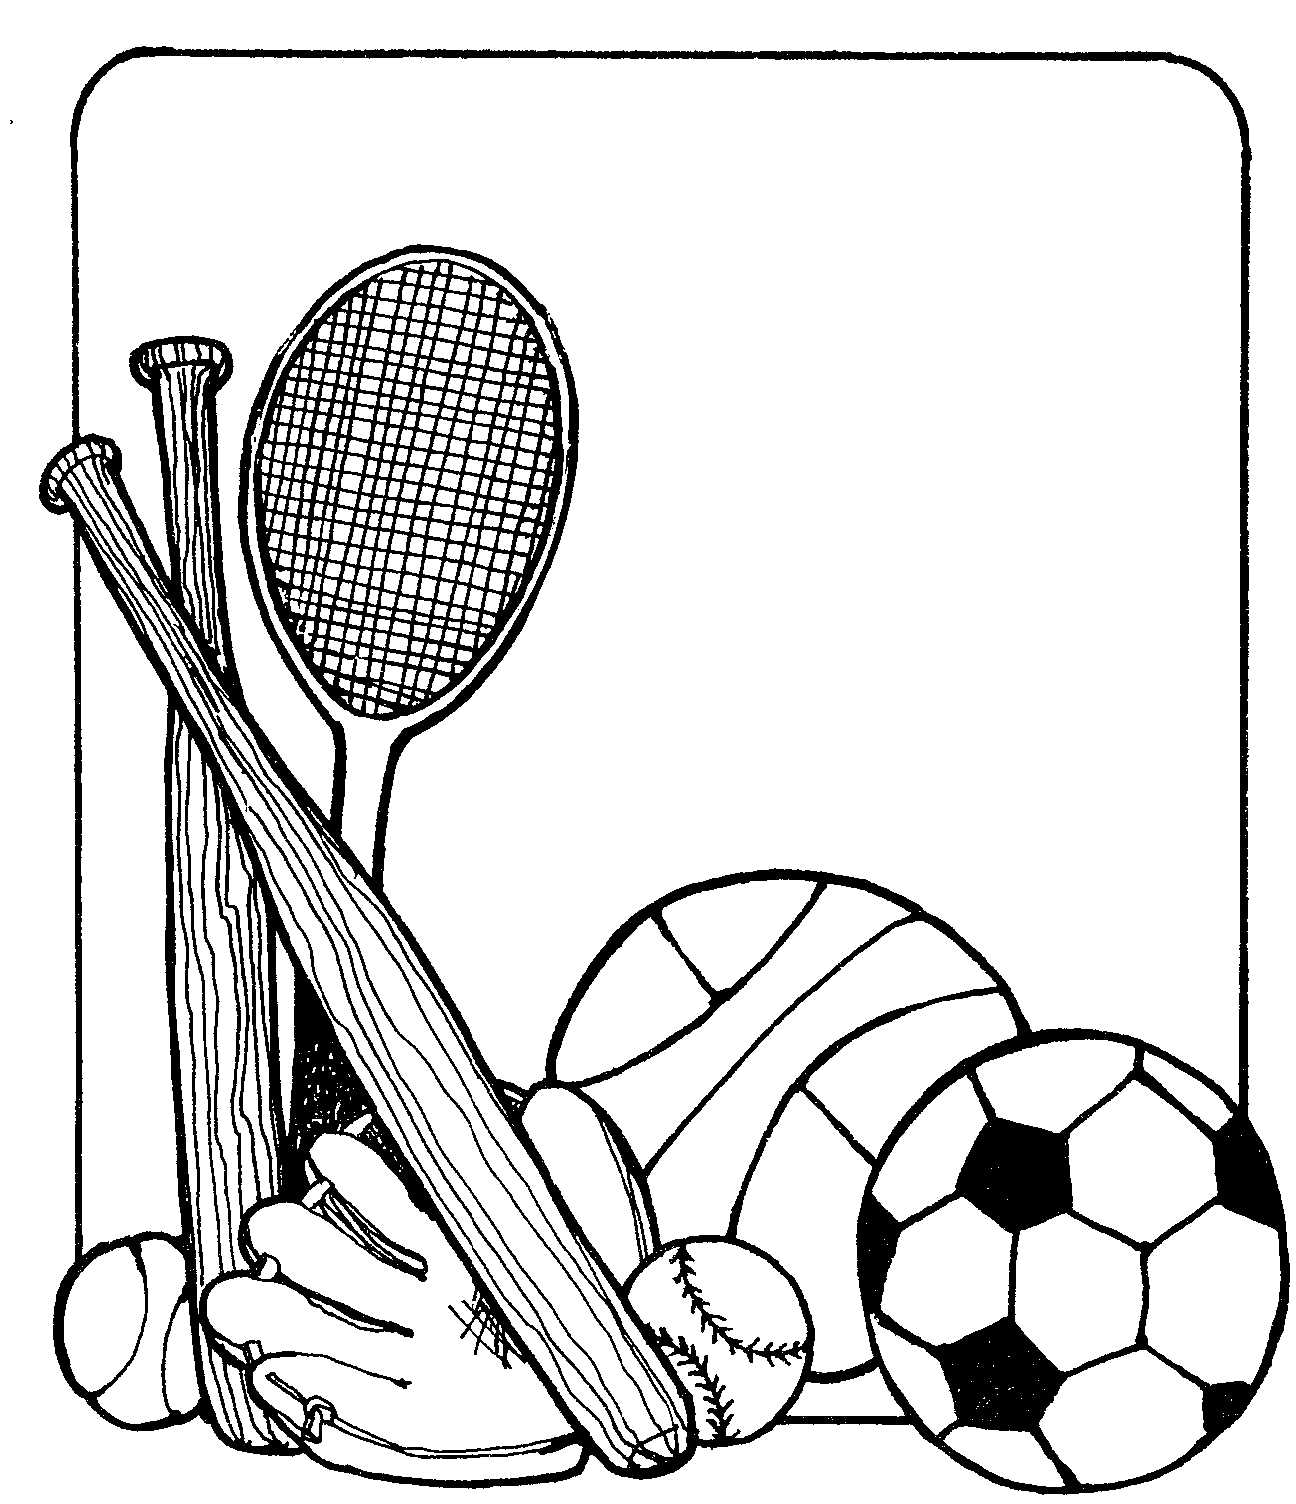 Free White Sports Cliparts, Download Free Clip Art, Free Clip Art on.